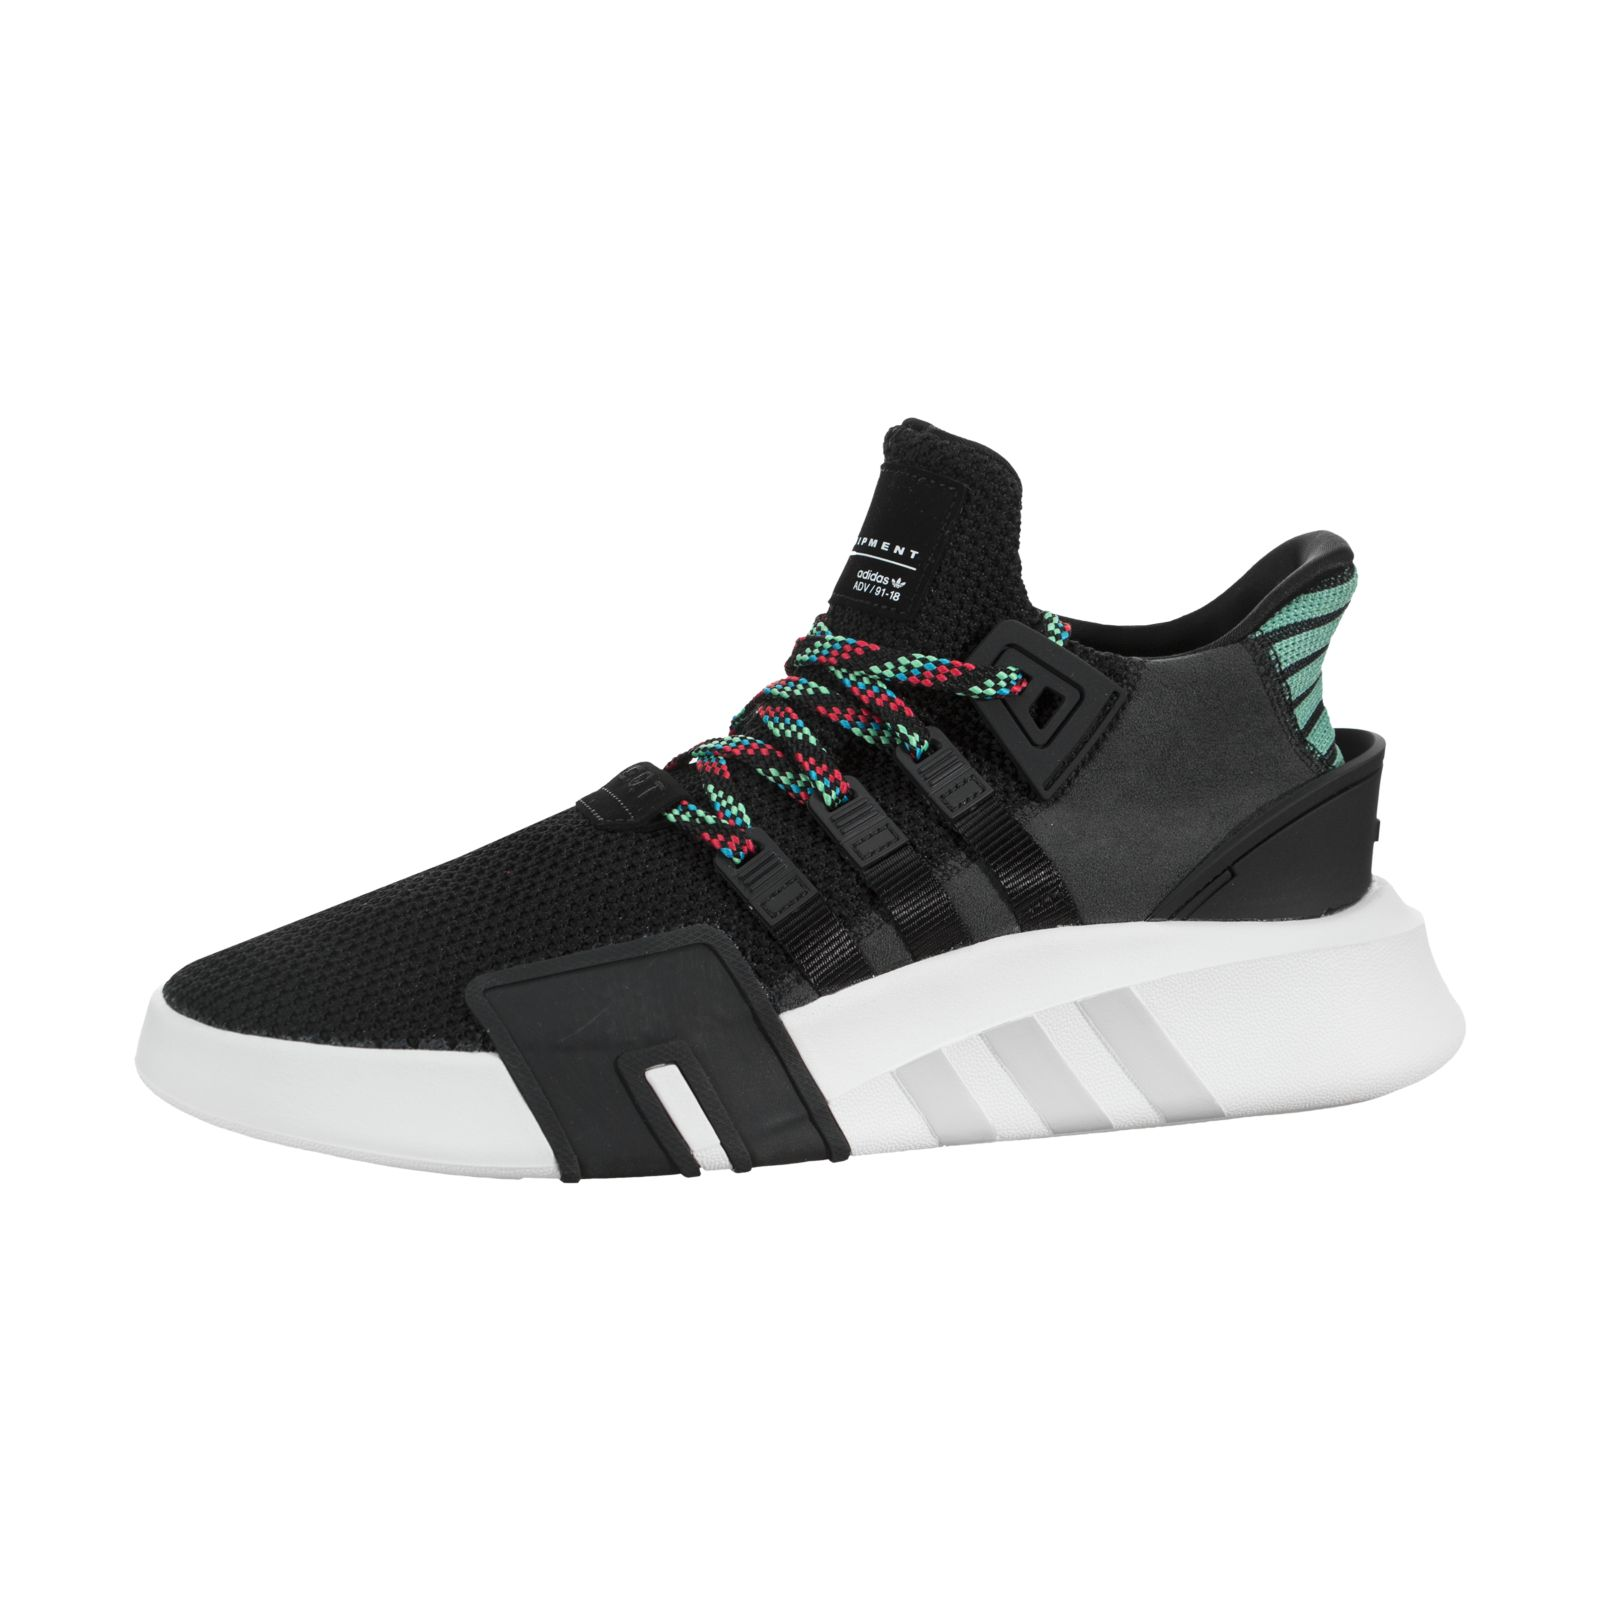 c6880bc5470 Image is loading Adidas-EQT-Basketball-ADV-cq2993